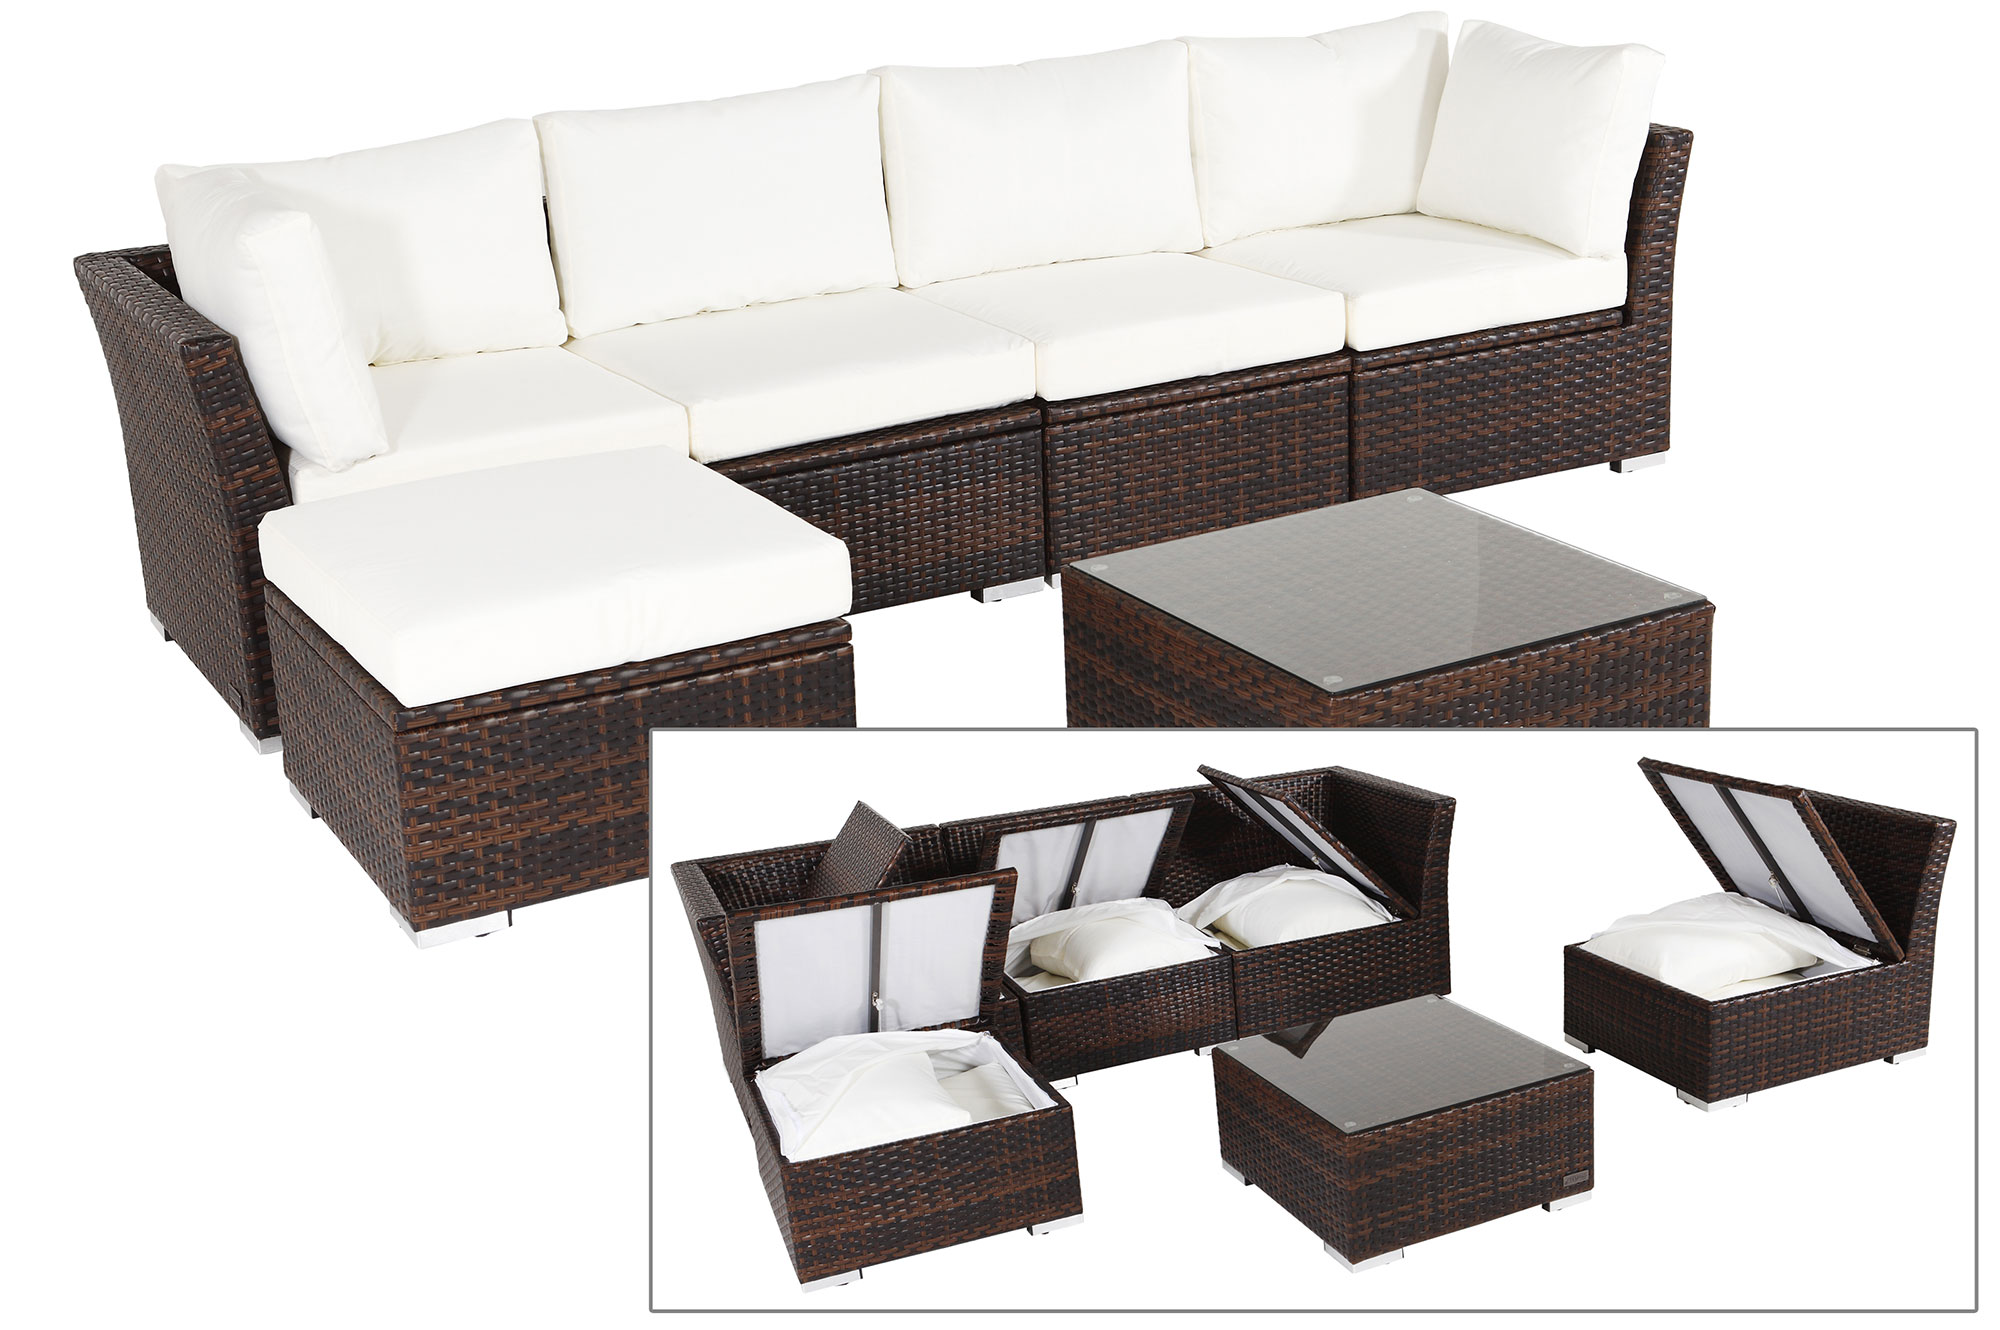 outflexx rattan gartenm bel aus polyrattan mit. Black Bedroom Furniture Sets. Home Design Ideas